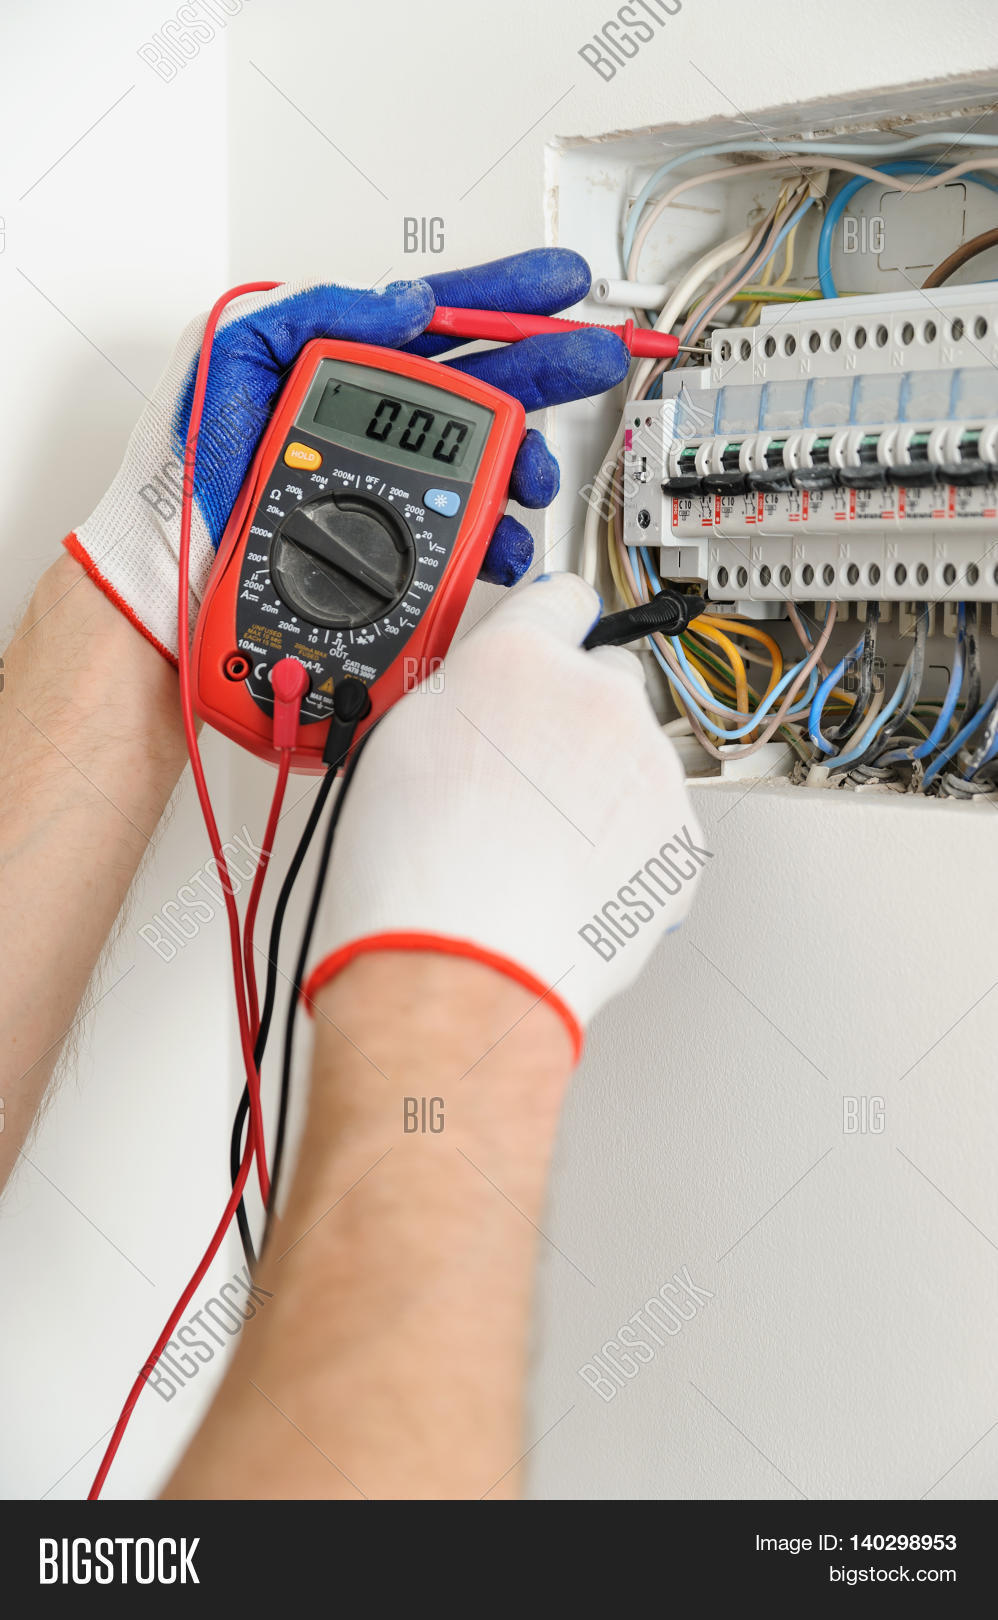 140298953 how to test fuse box with multimeter efcaviation com how to test a fuse block at reclaimingppi.co